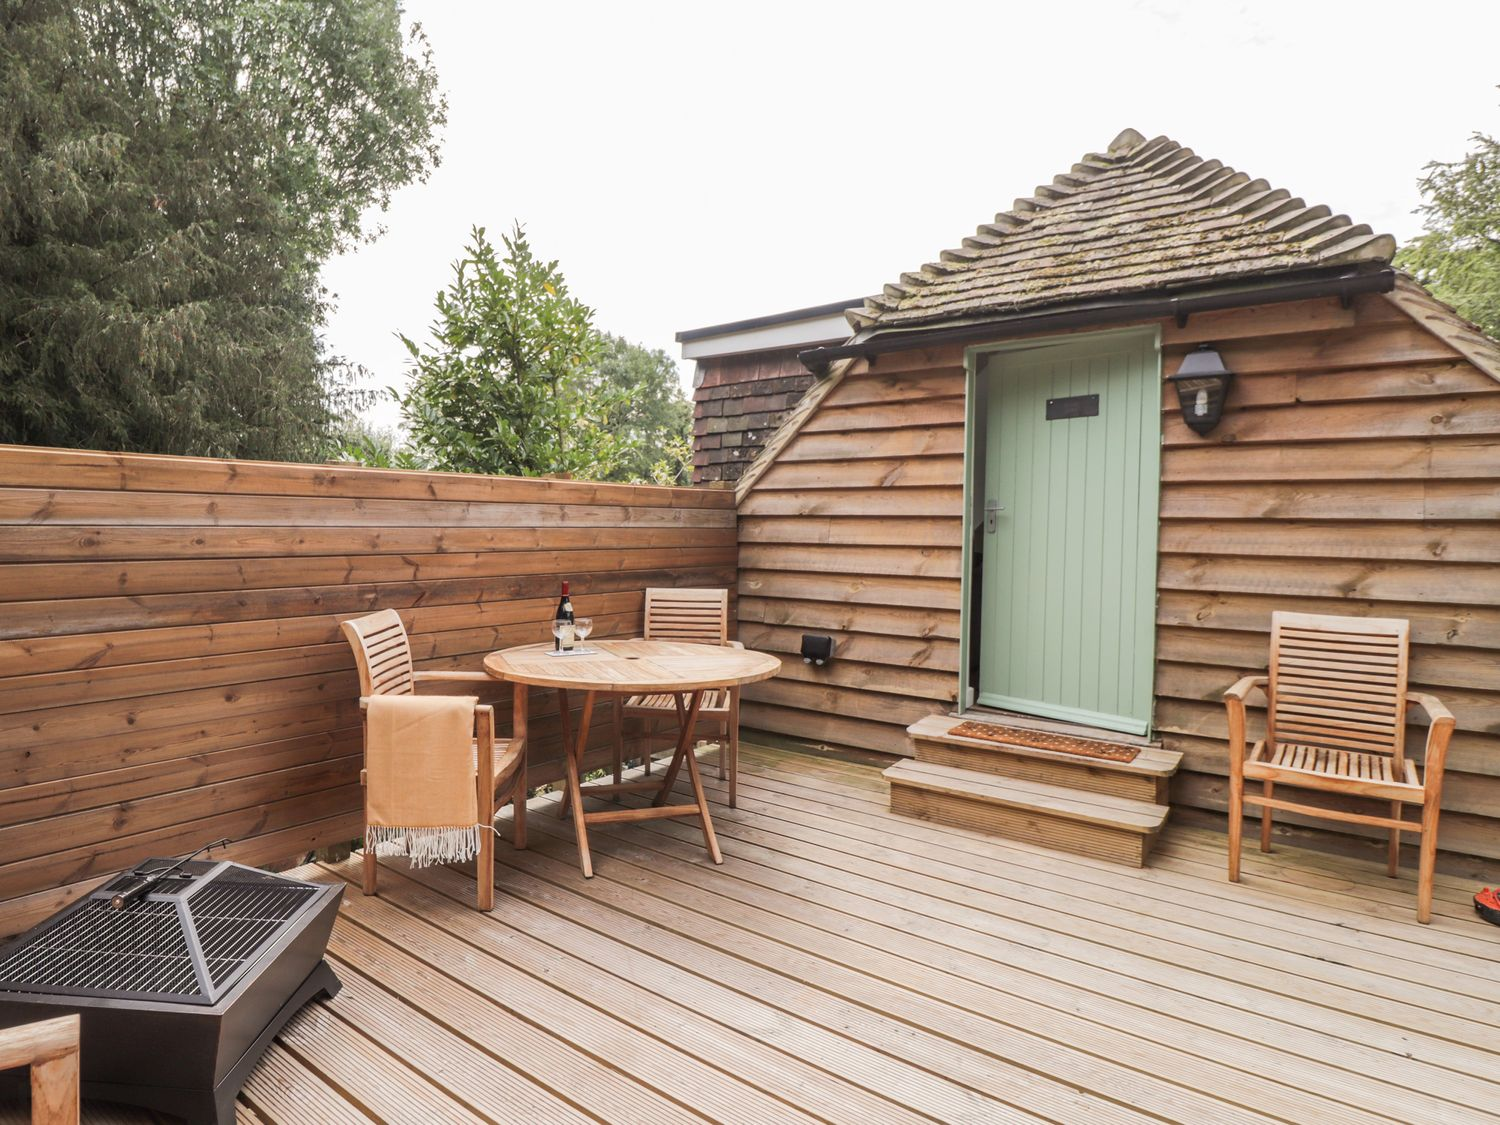 Kent: Quirky loft stay with hot tub